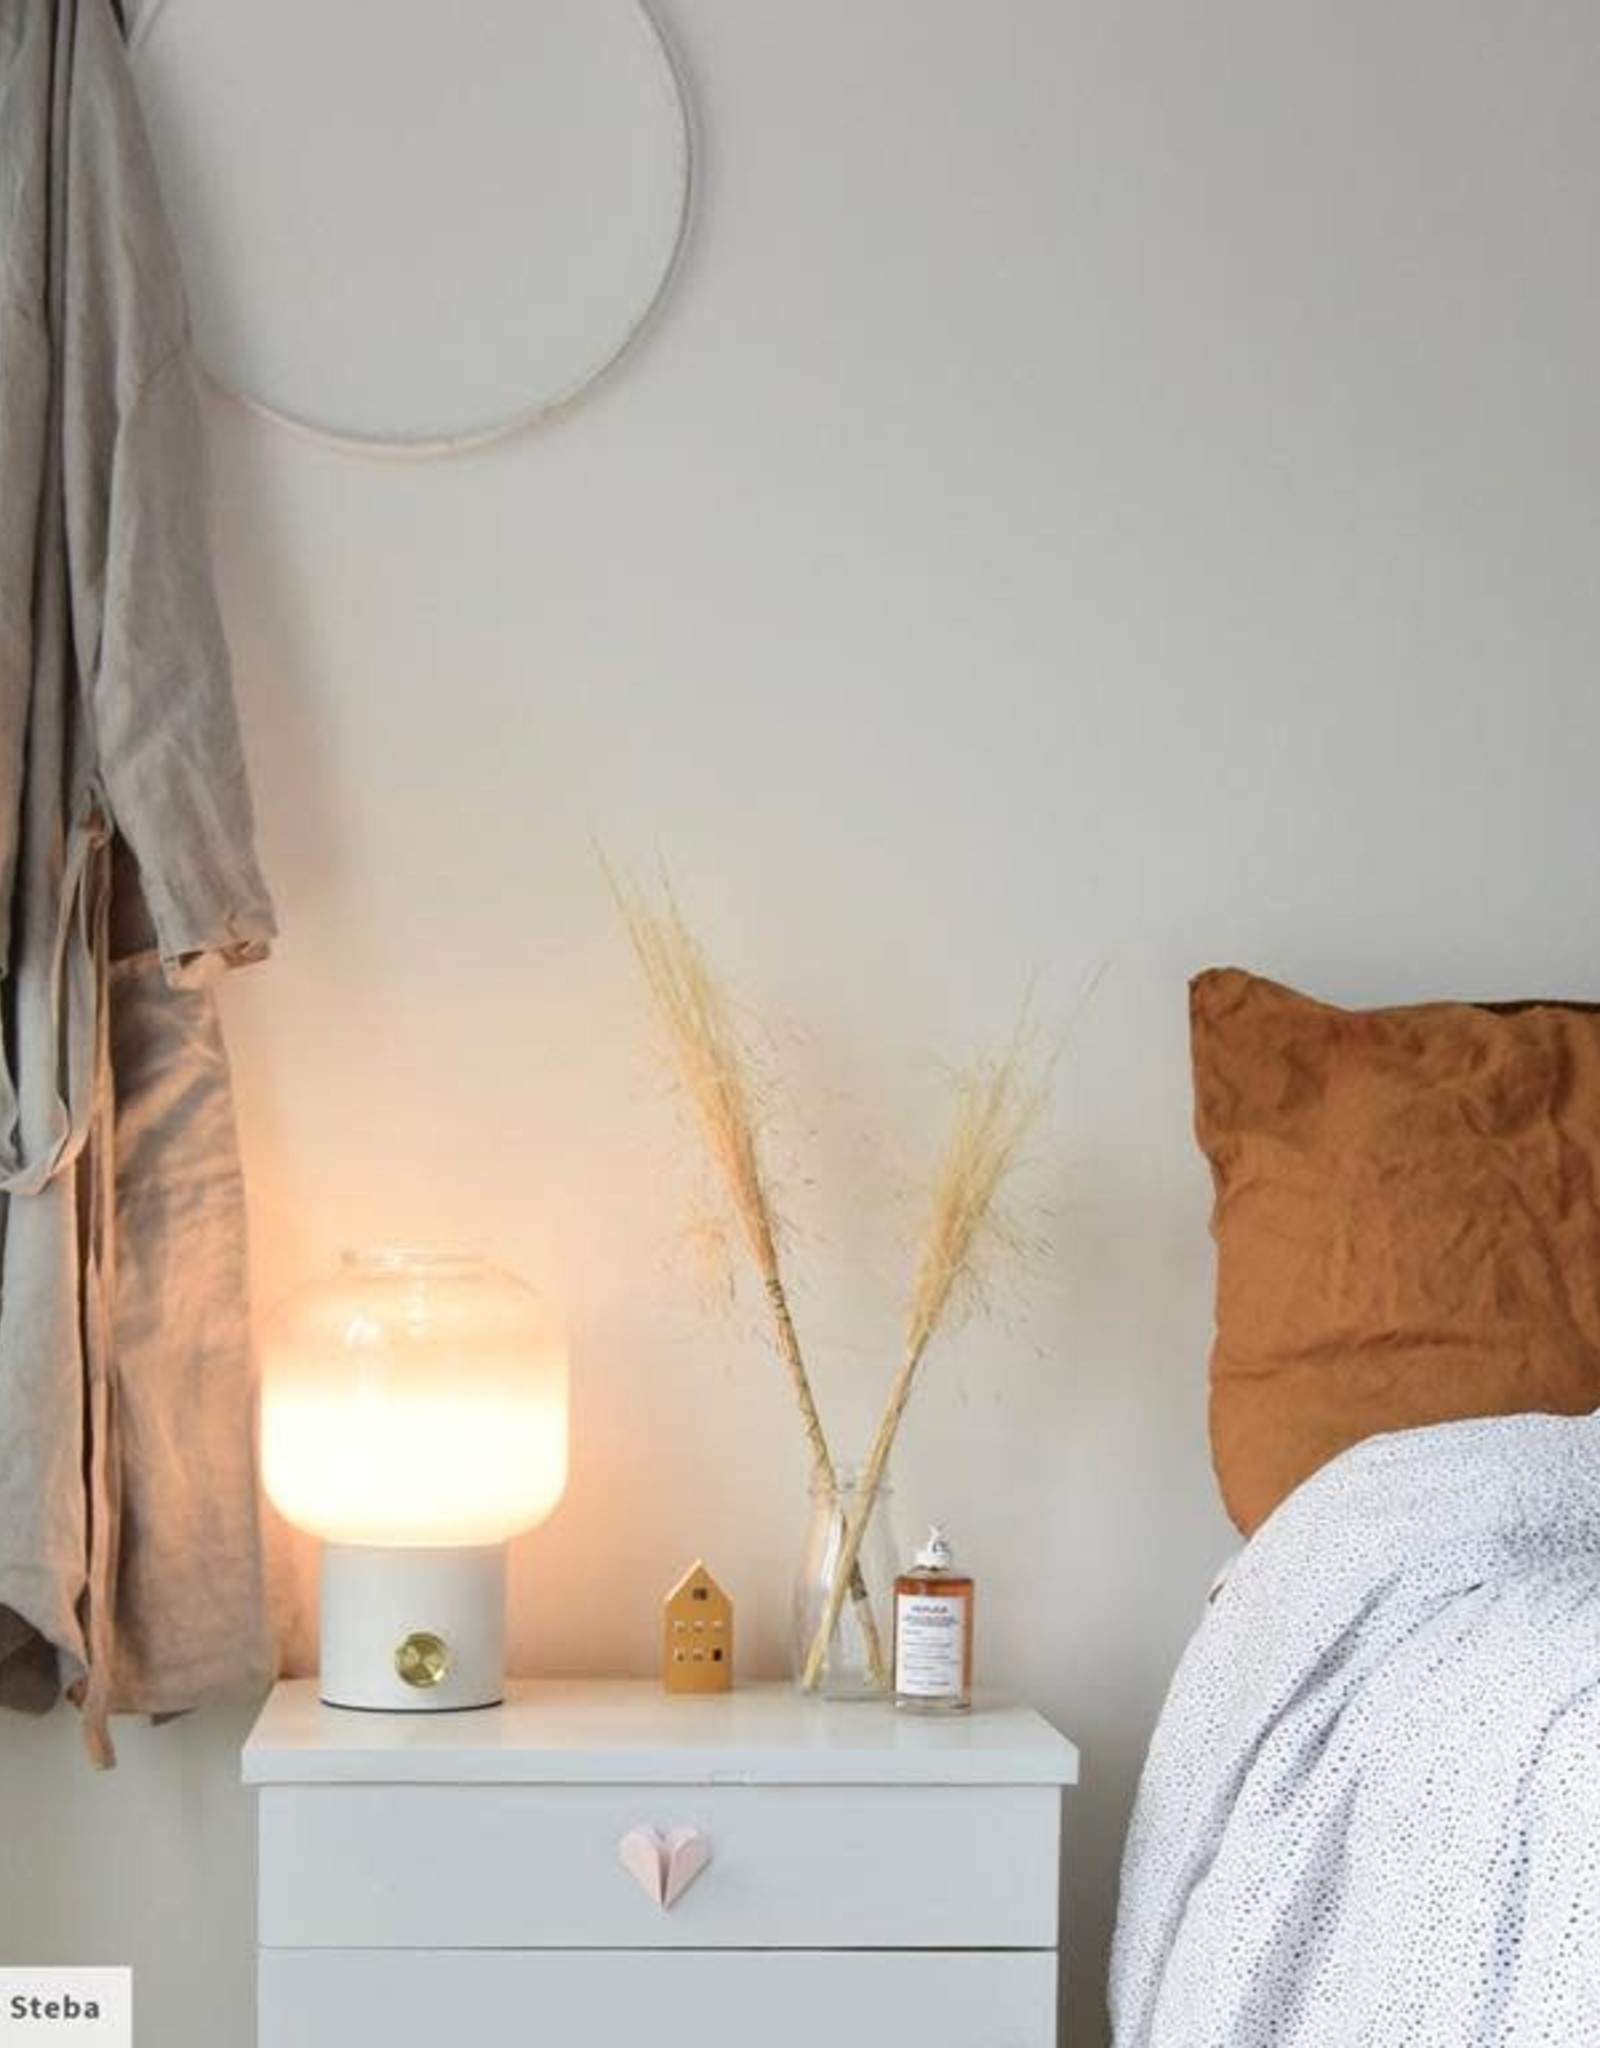 Zuiver Zuiver - Table lamp - Moody - White